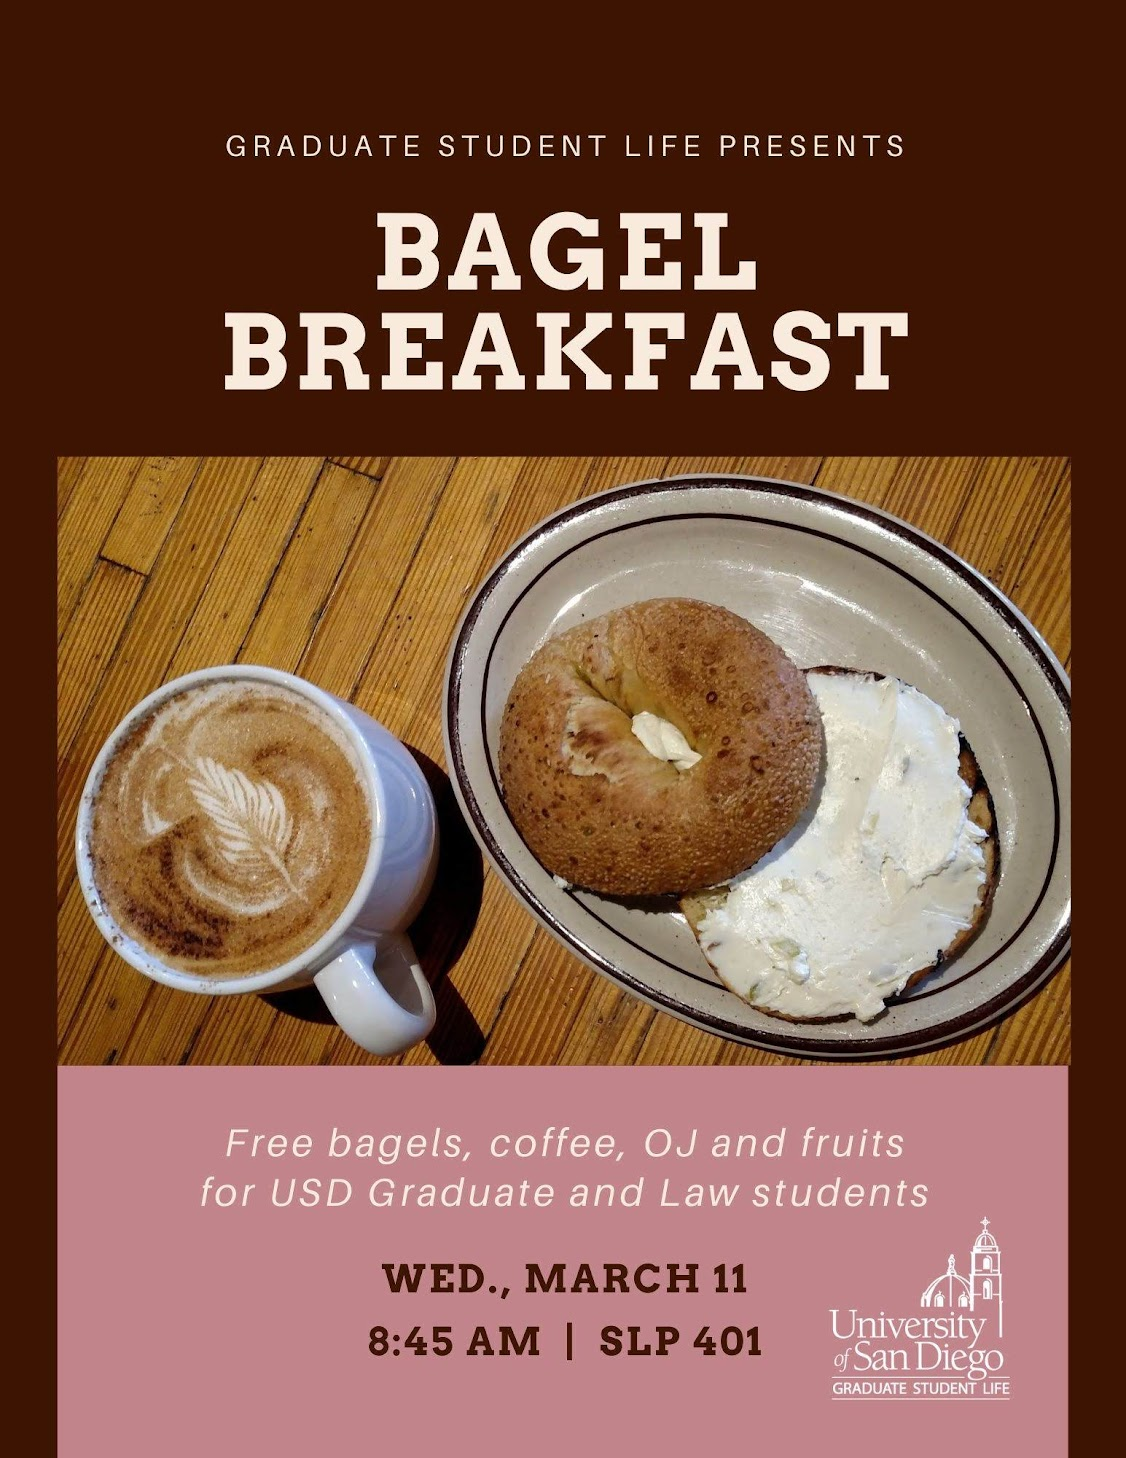 Bagel Breakfast in SLP 401 at 8:45am on Wednesday, March 11